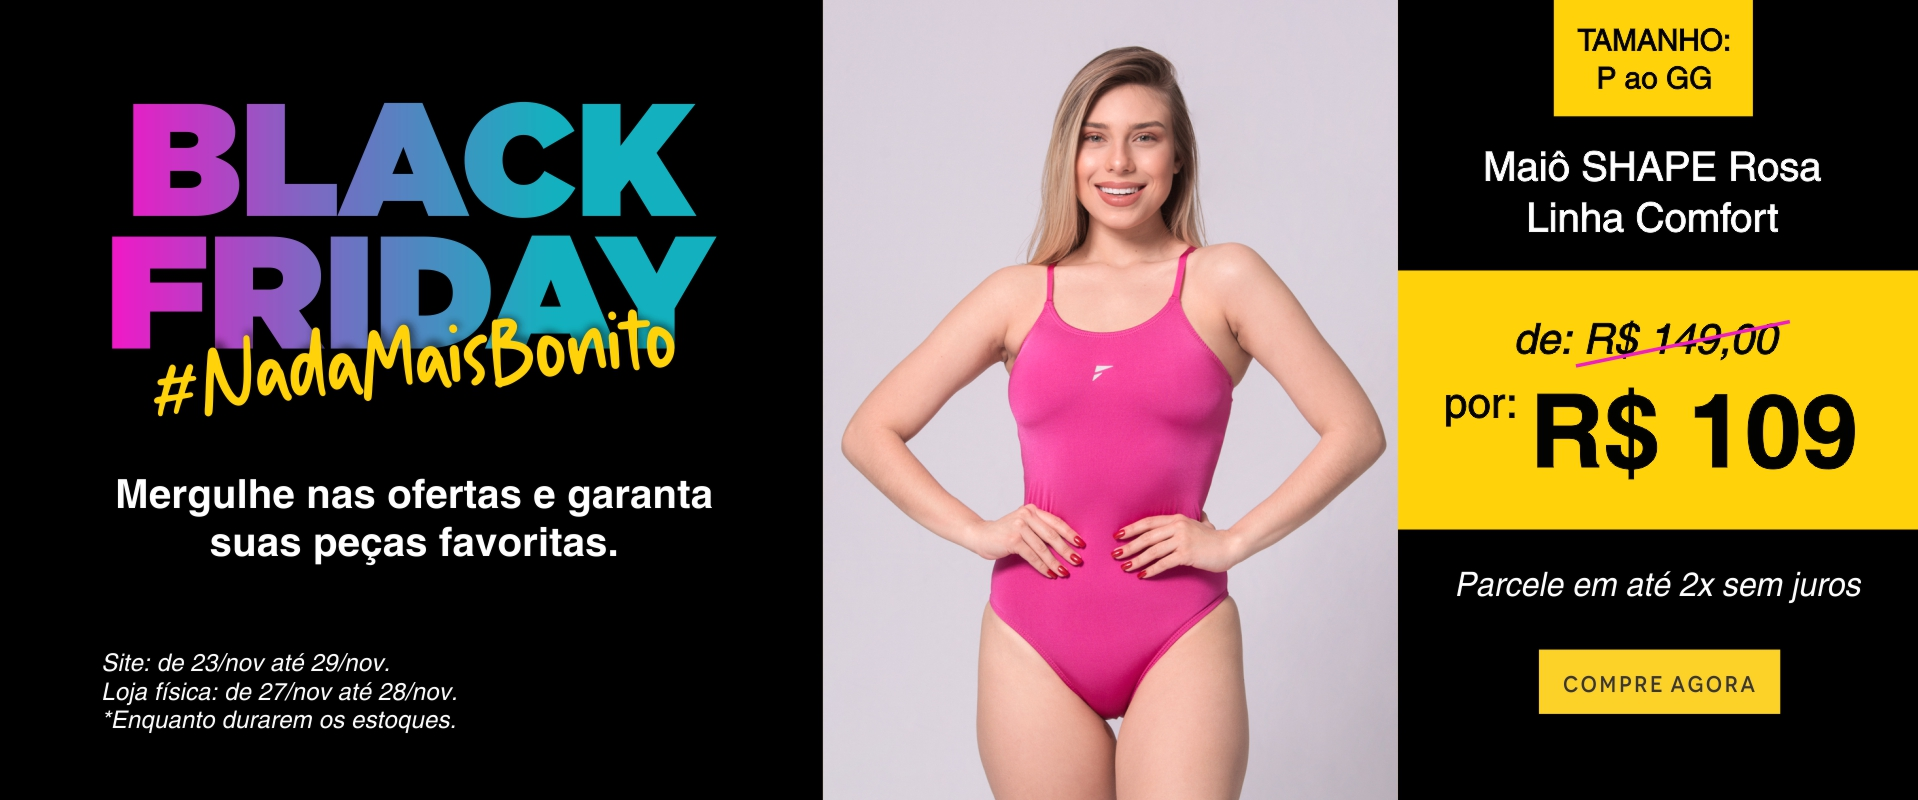 Maiô Shape 1 - Black Friday